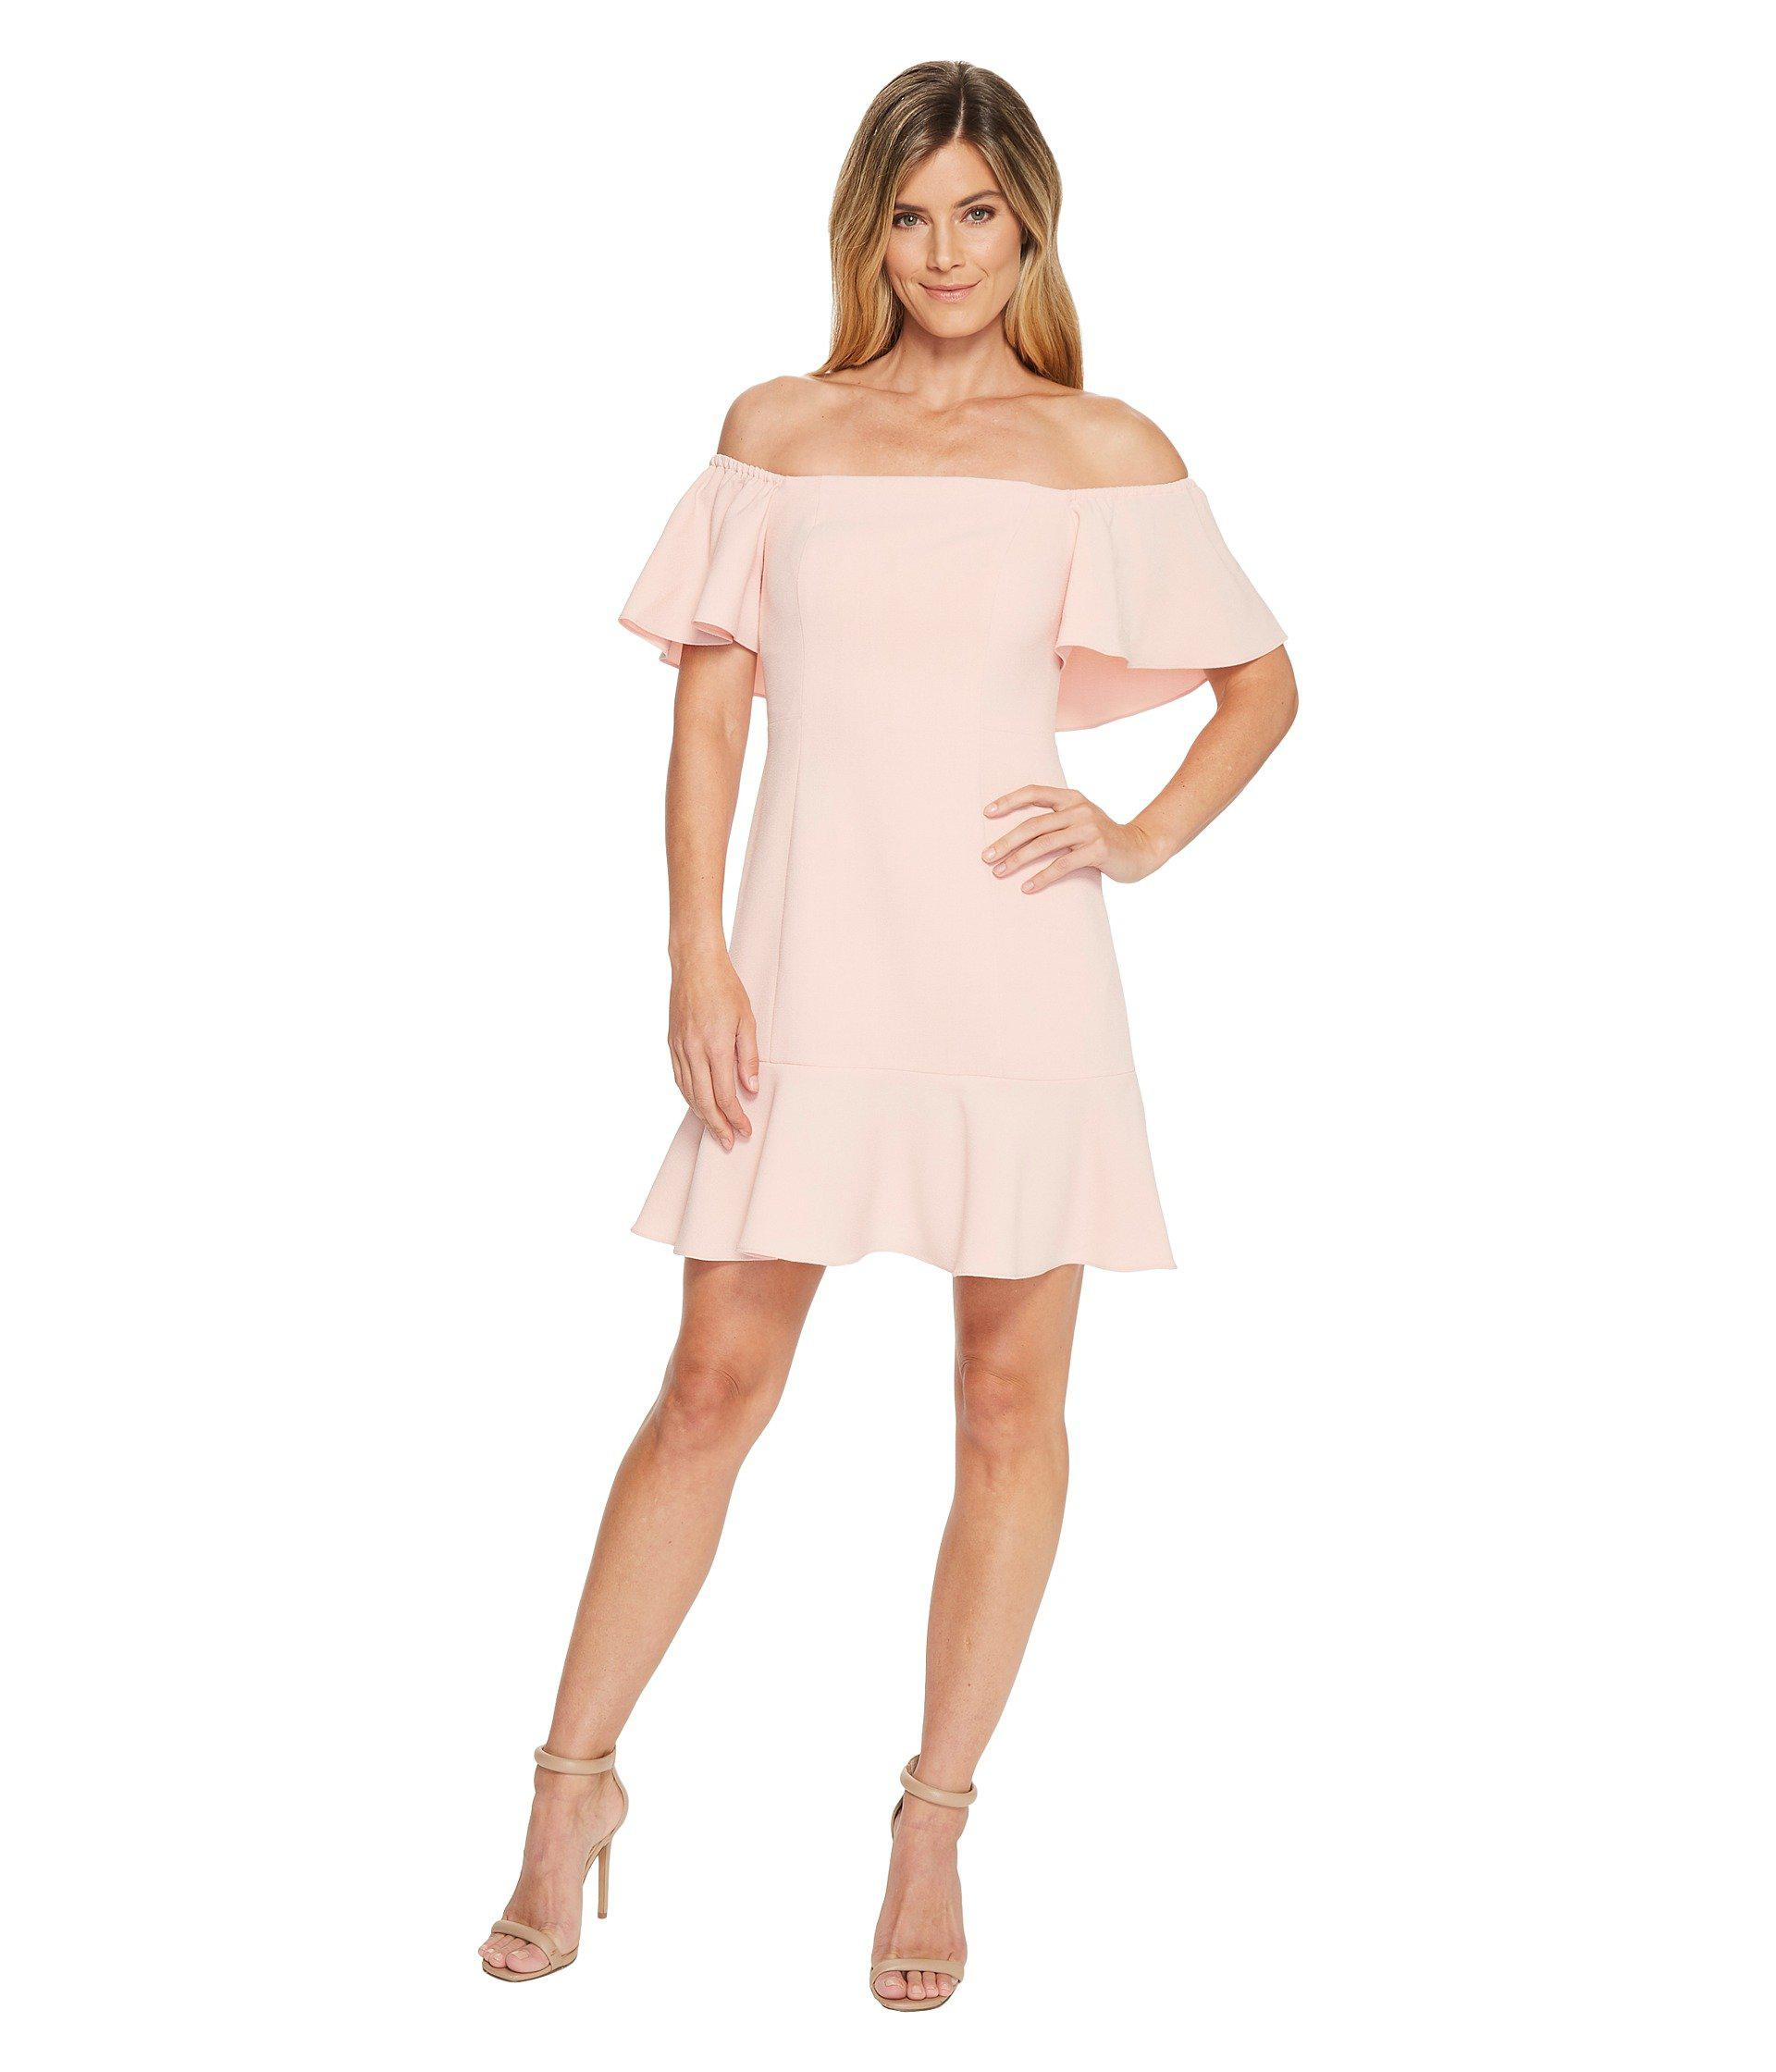 585654fd6ae9 Lyst - Vince Camuto Flounce Hem Dress in Pink - Save 64%